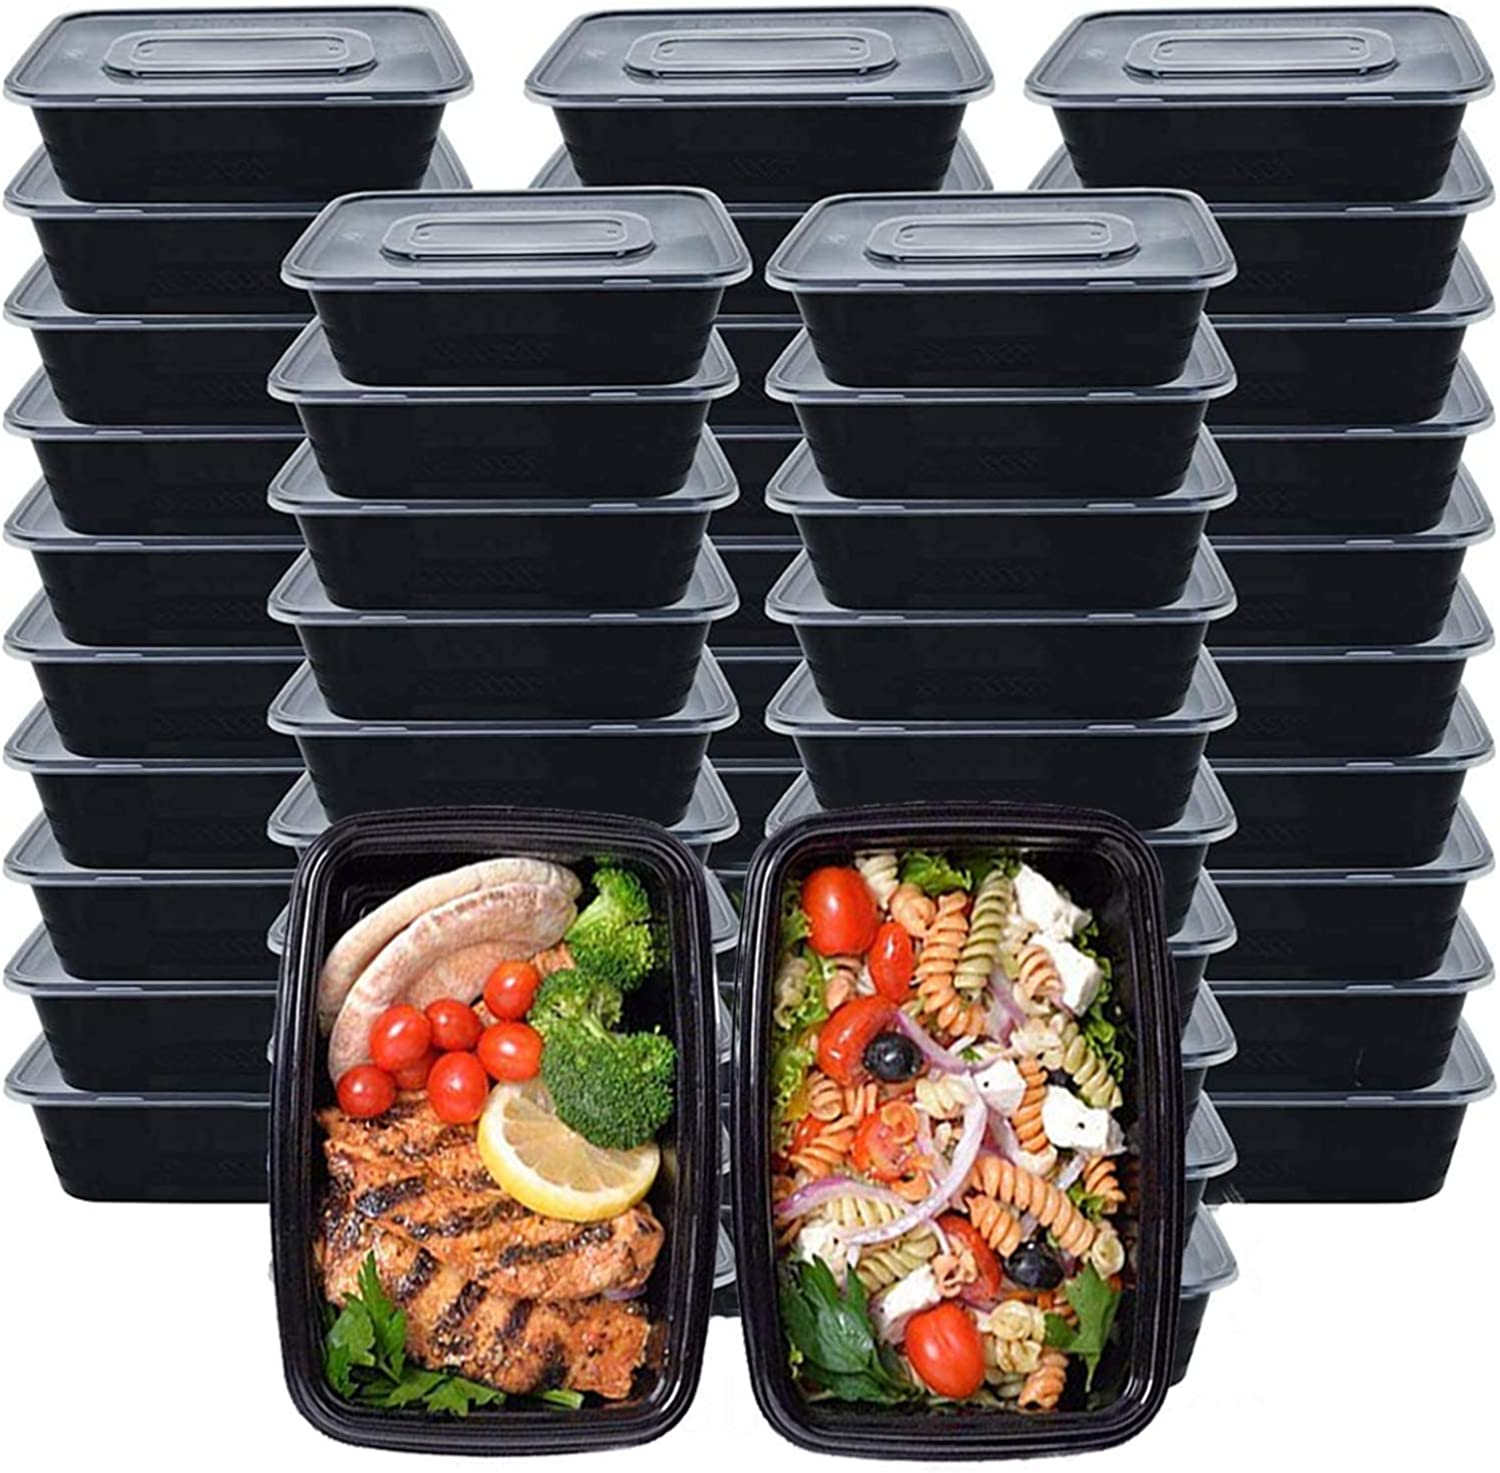 Meal Prep Containers, 50 Pack Food Storage Containers with Lids,Disposable Bento Box Reusable Plastic Bento Lunch Box Microwave/Dishwasher/Freezer Safe (750ML/ 26 OZ)